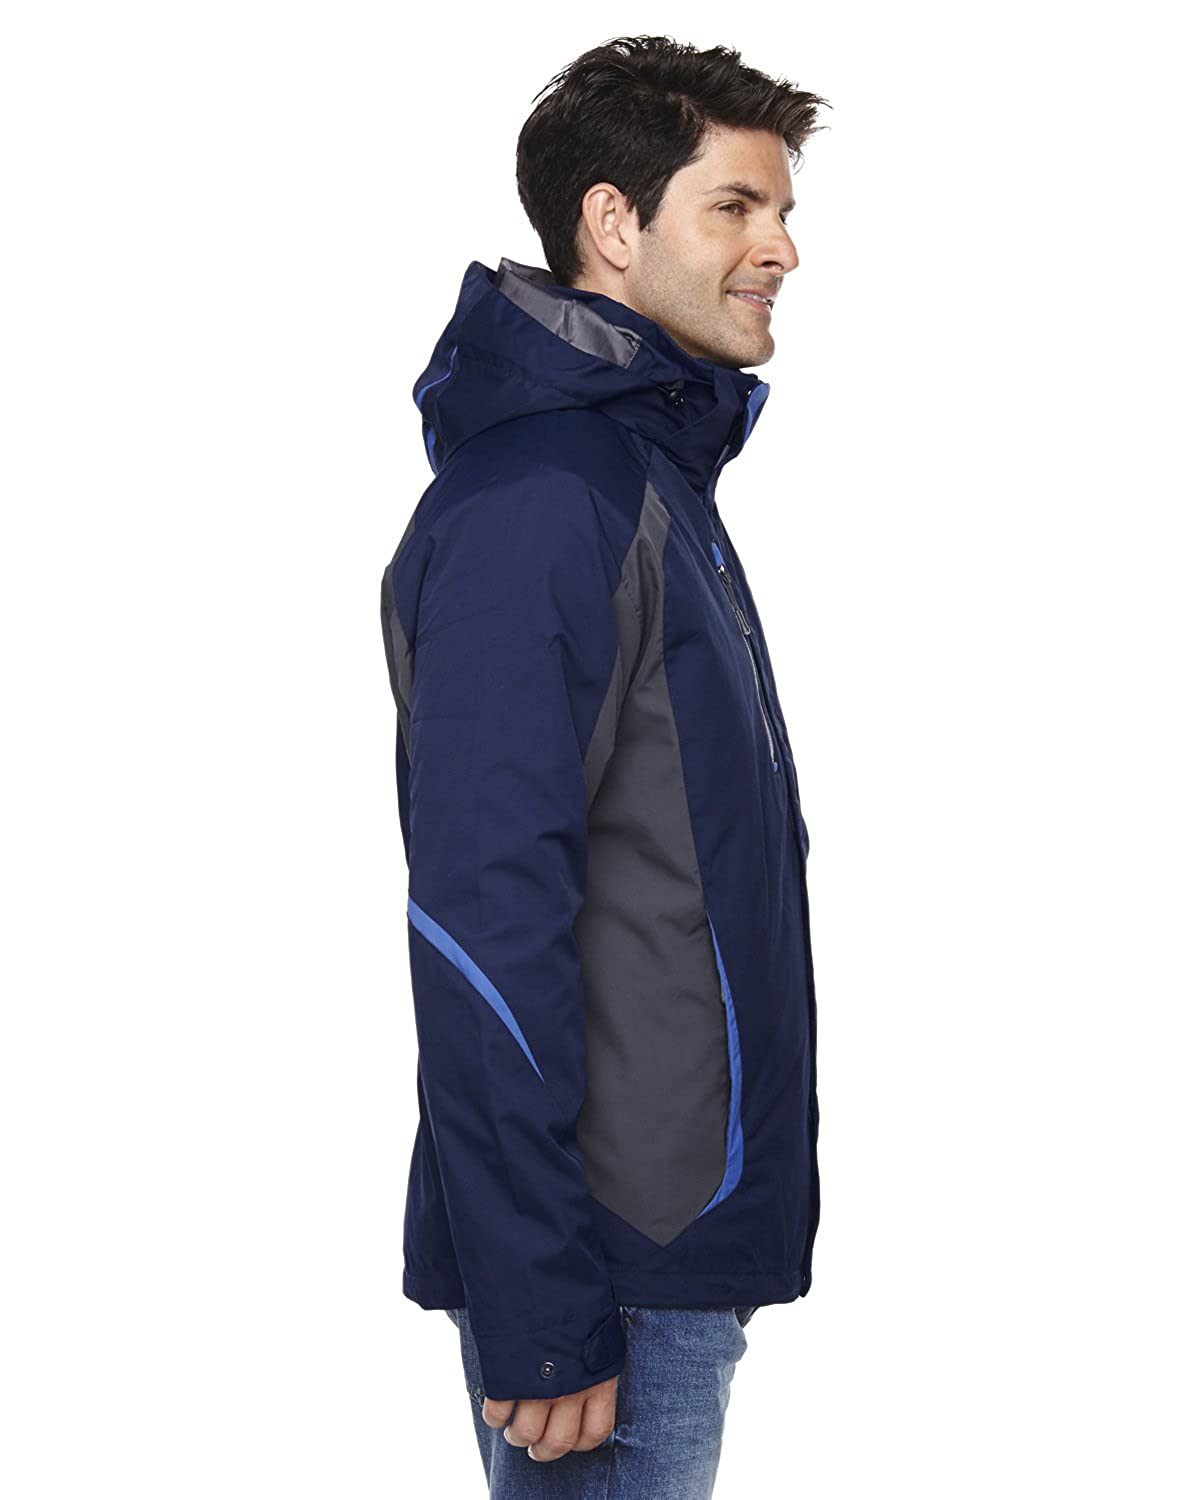 88195 S -NIGHT 846 North End Mens 3-In-1 Jackets With Insulated Liner